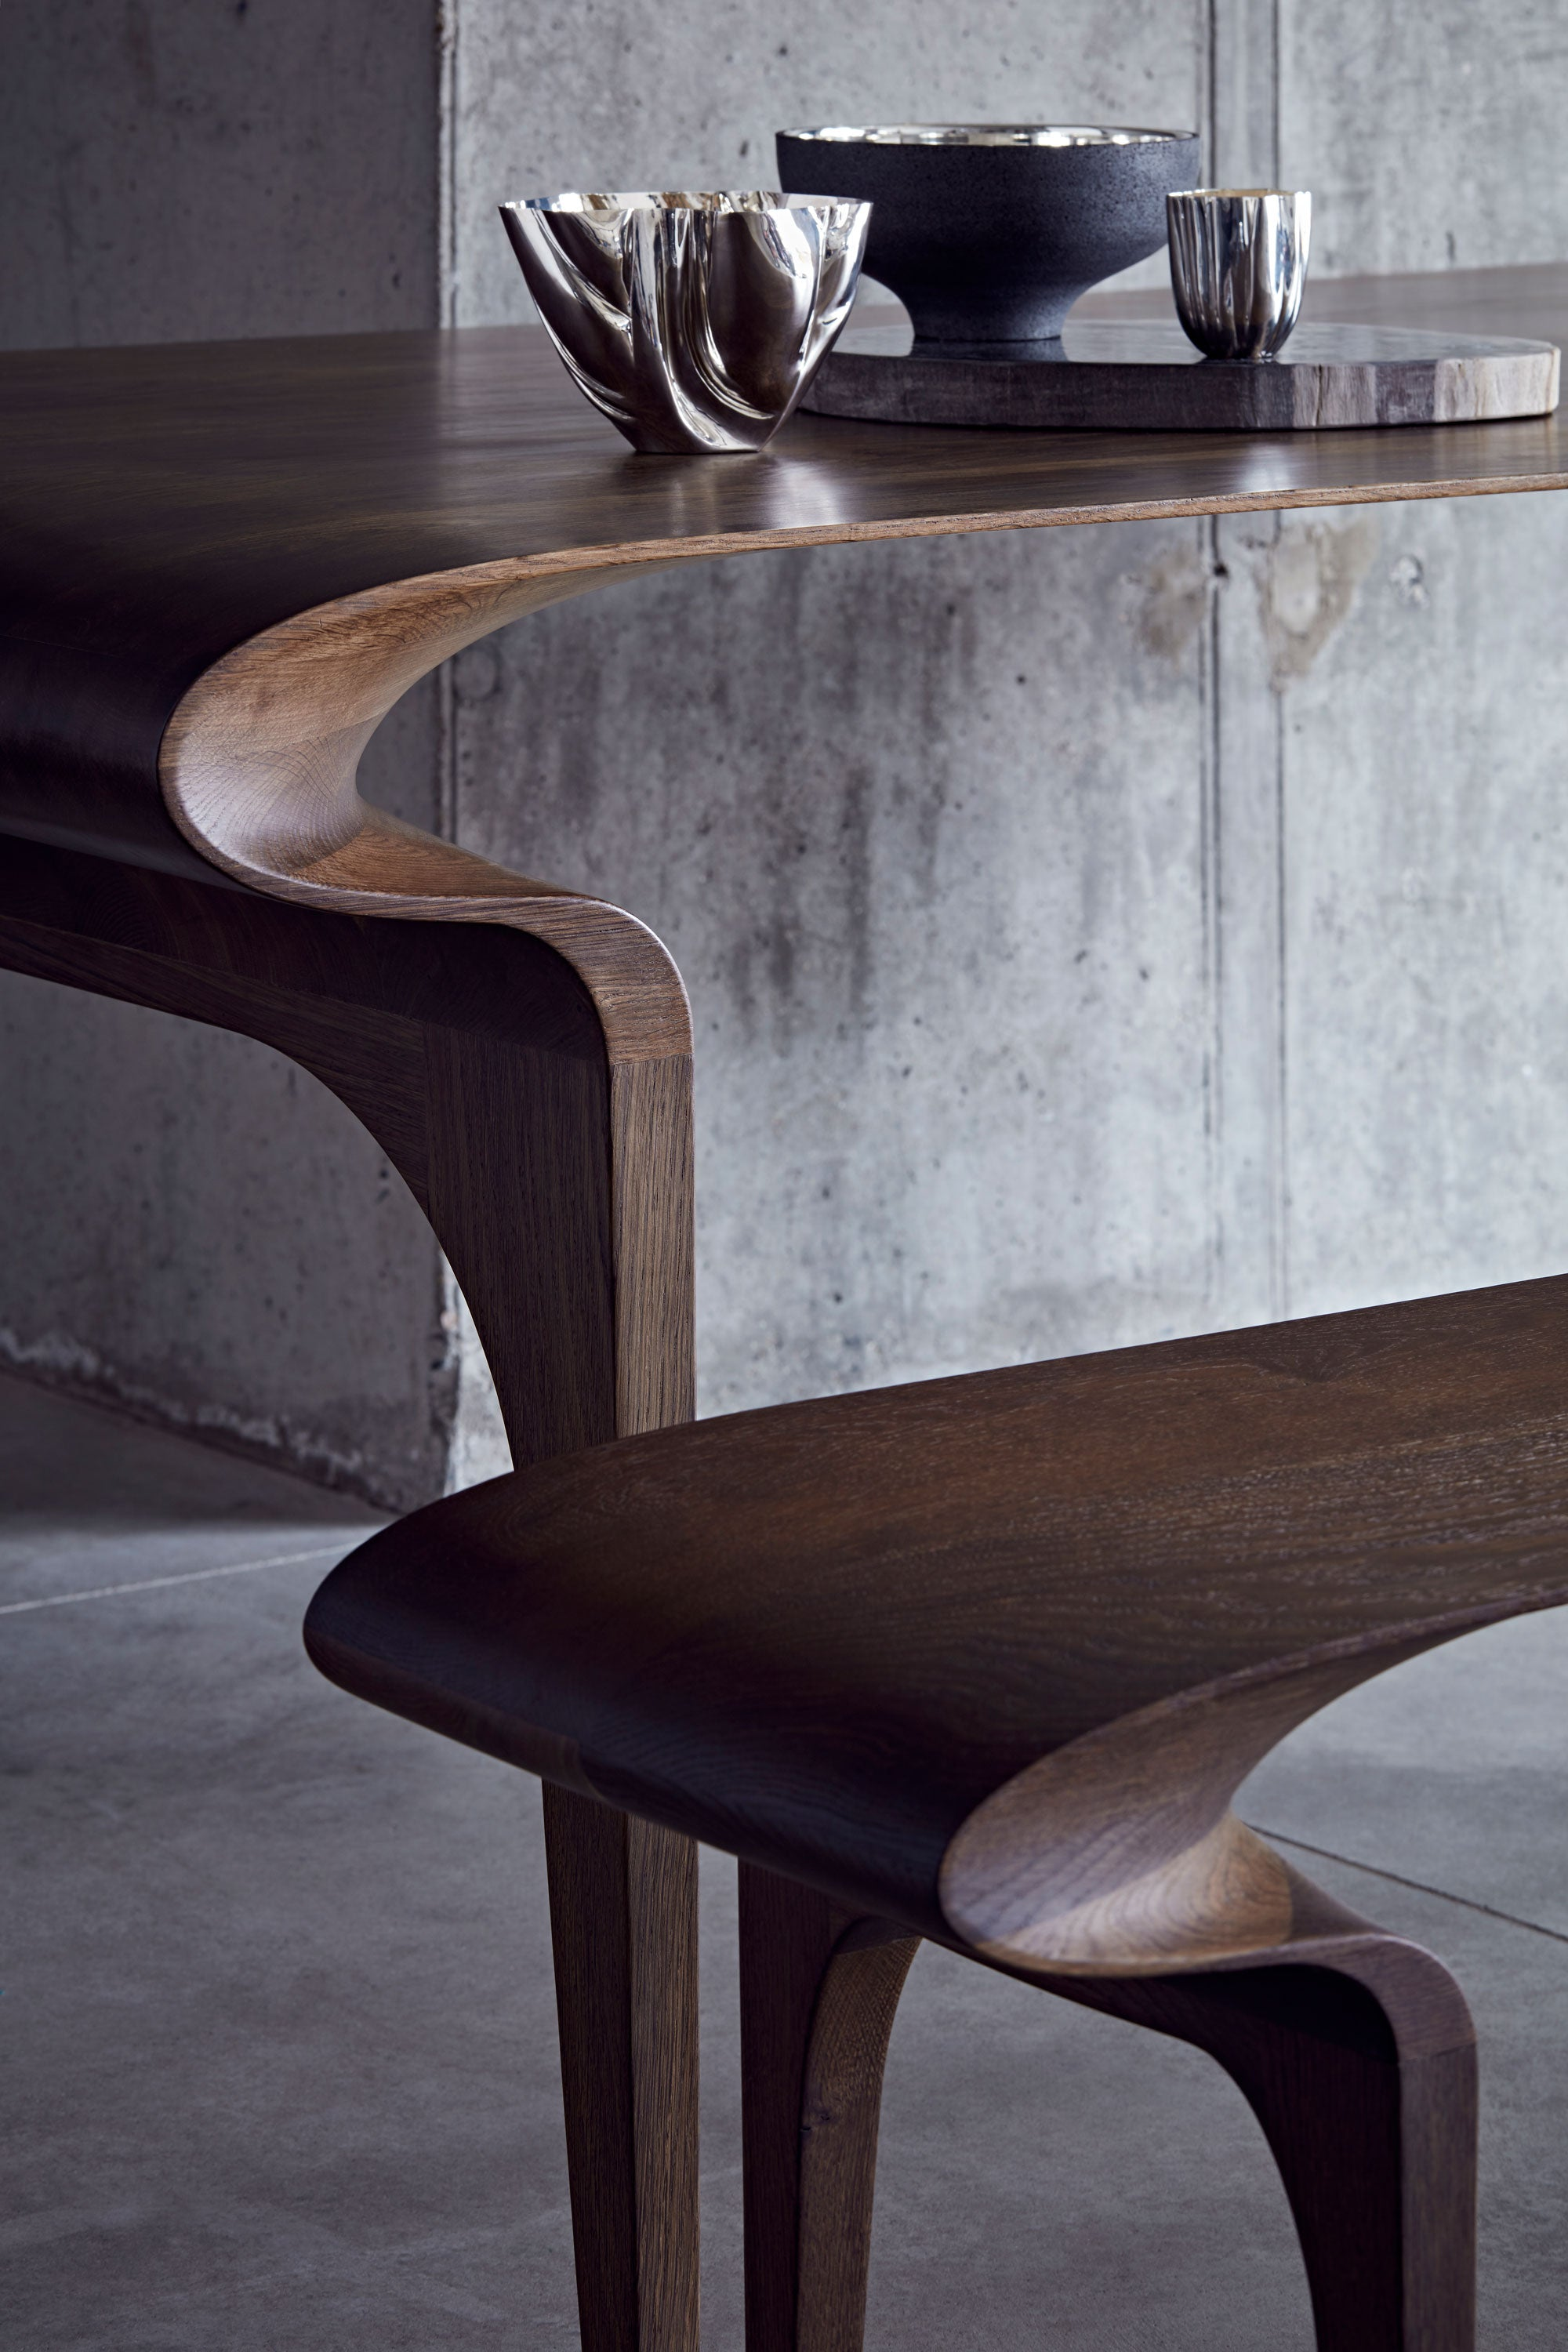 Bodo Sperlein Furniture Designer Silver Designer Contour Table and Bench Handmade in the UK